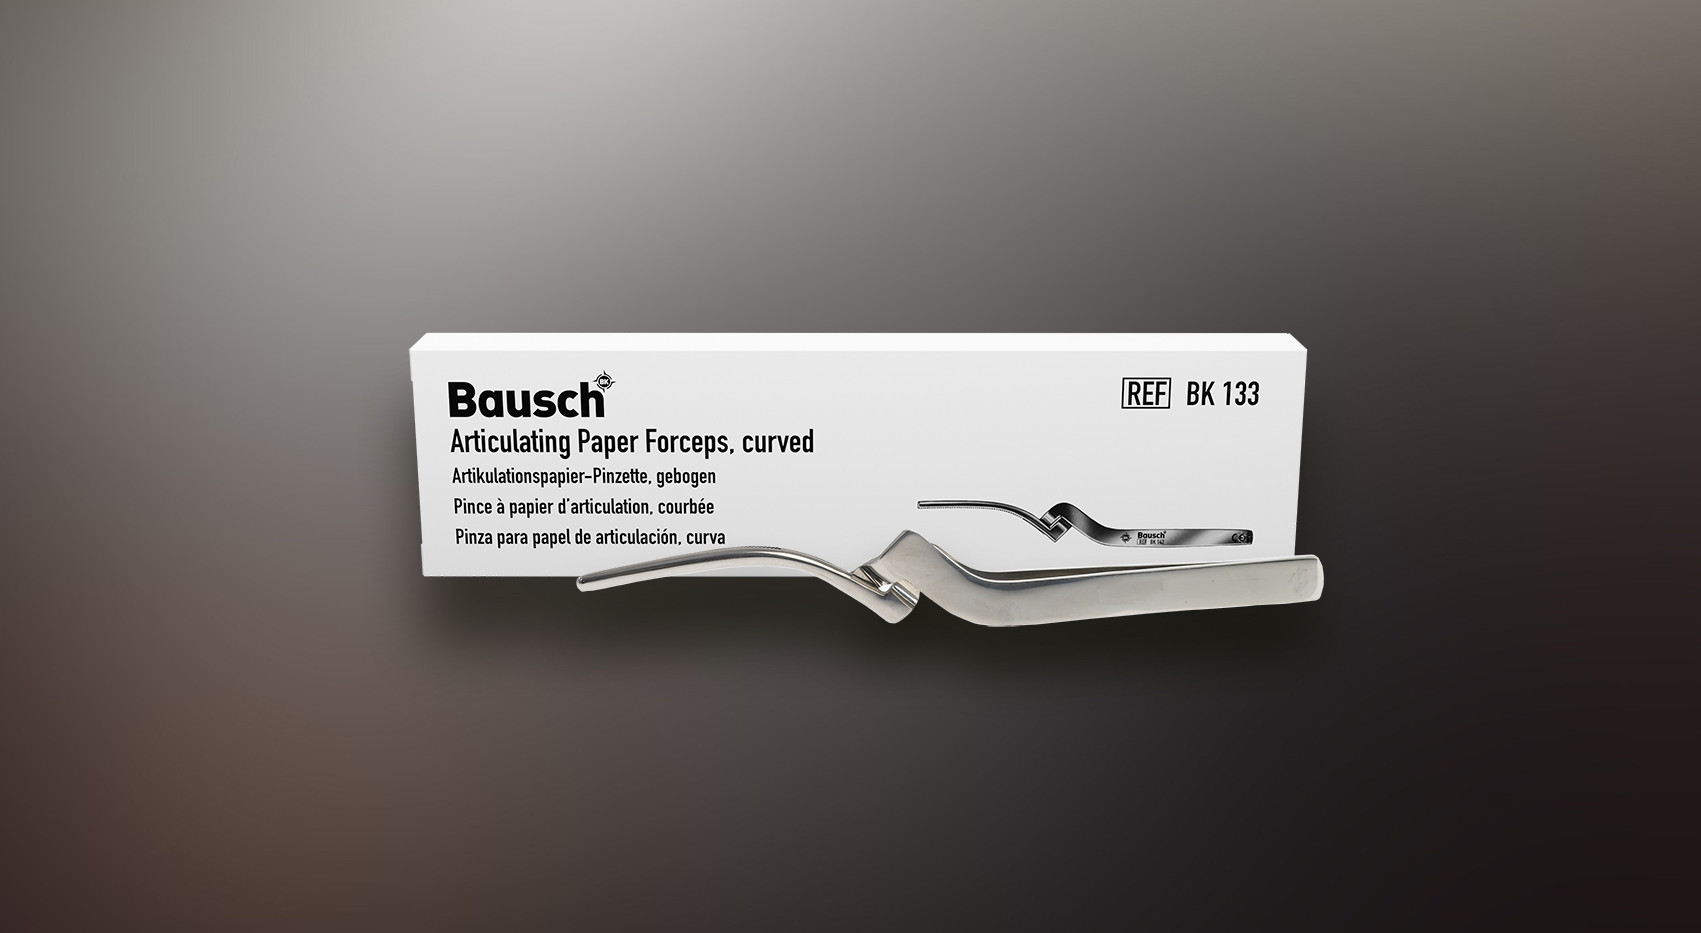 Articulating Paper Forceps